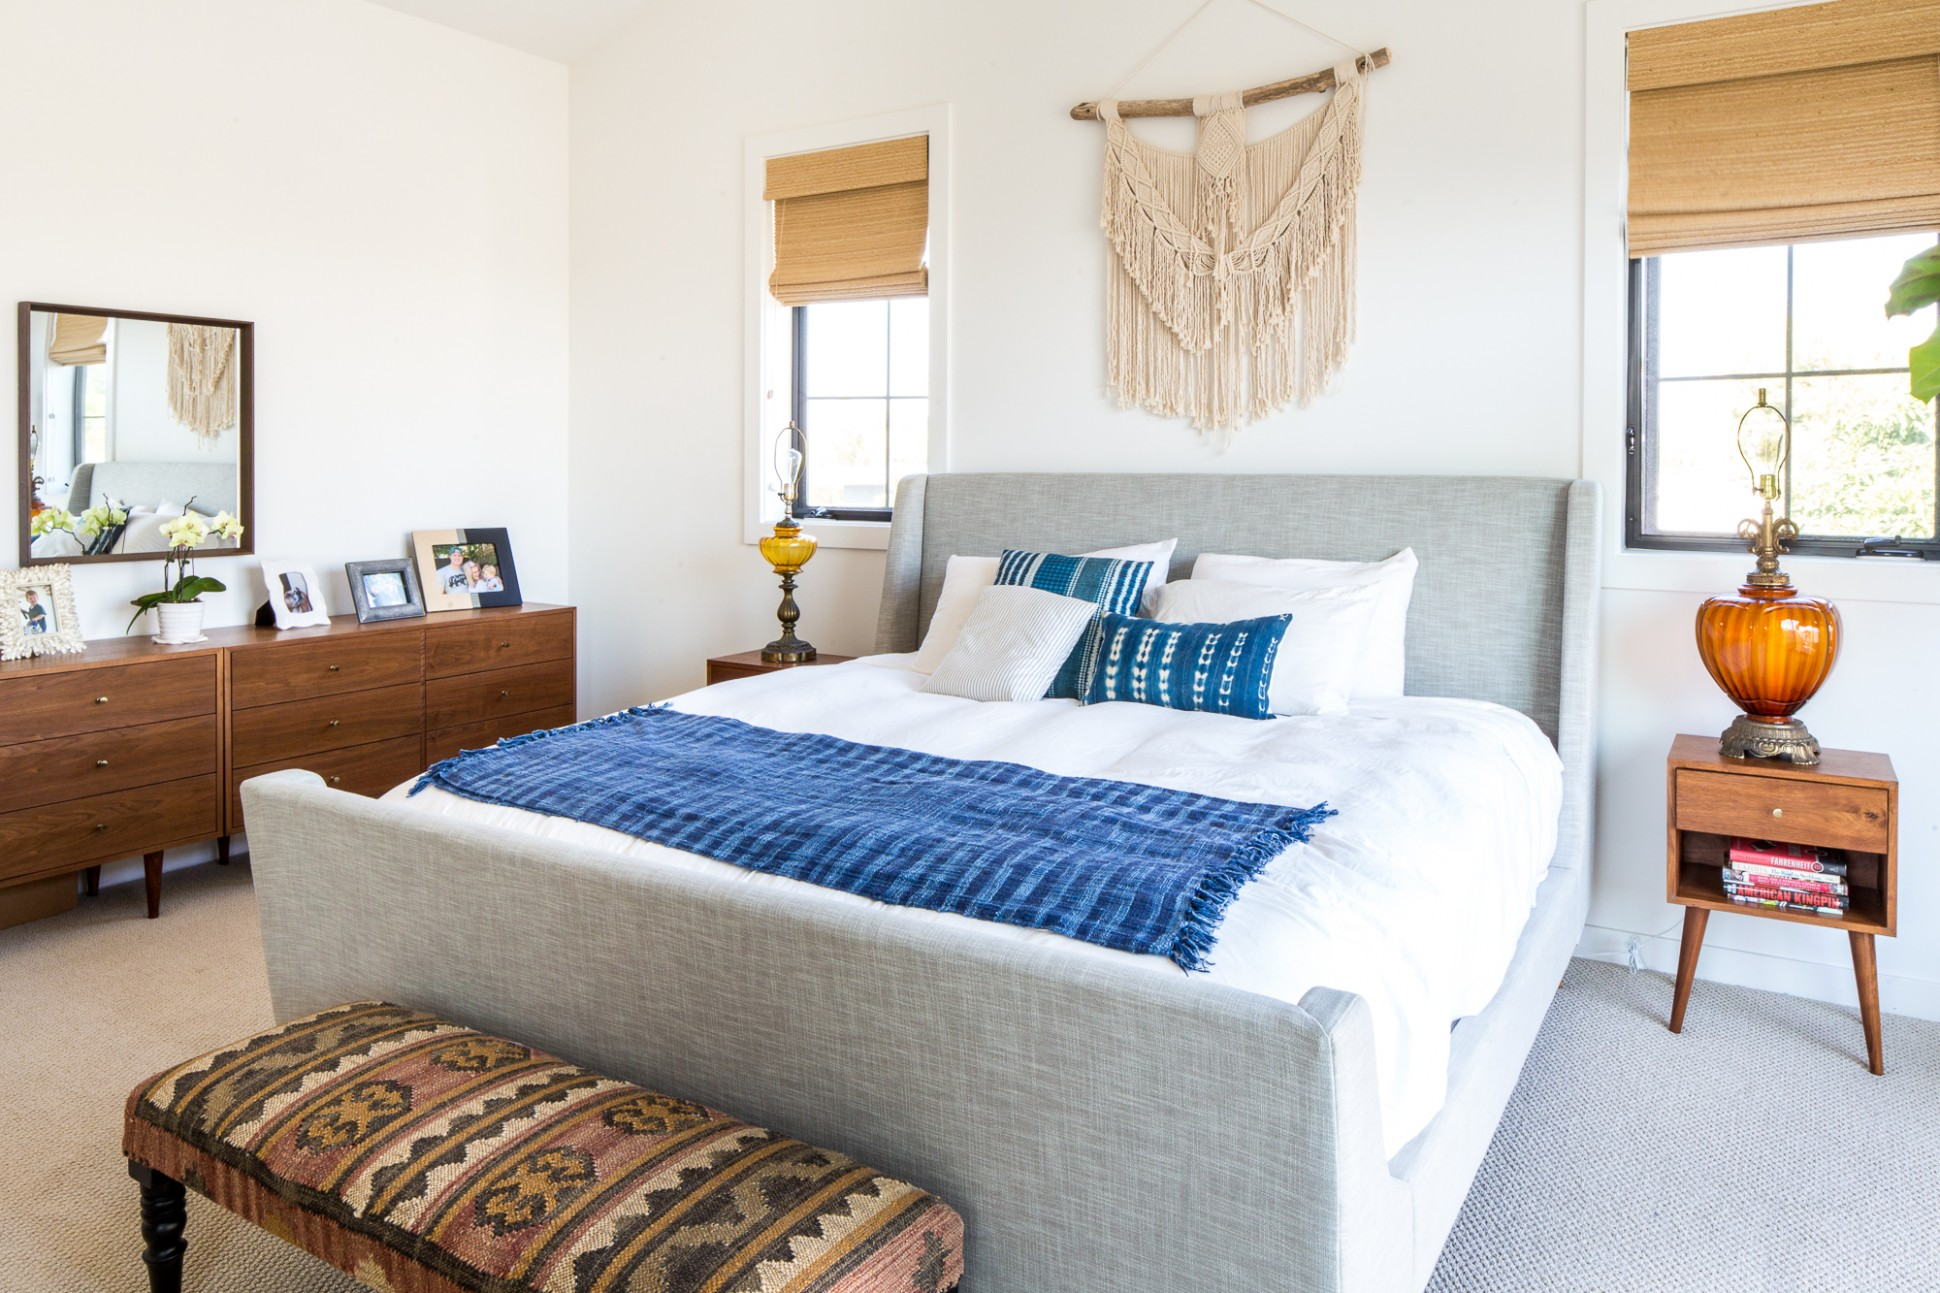 The 8 Best Bedroom Decorating Tips, According to Apartment Therapy  - Bedroom Ideas Apartment Therapy